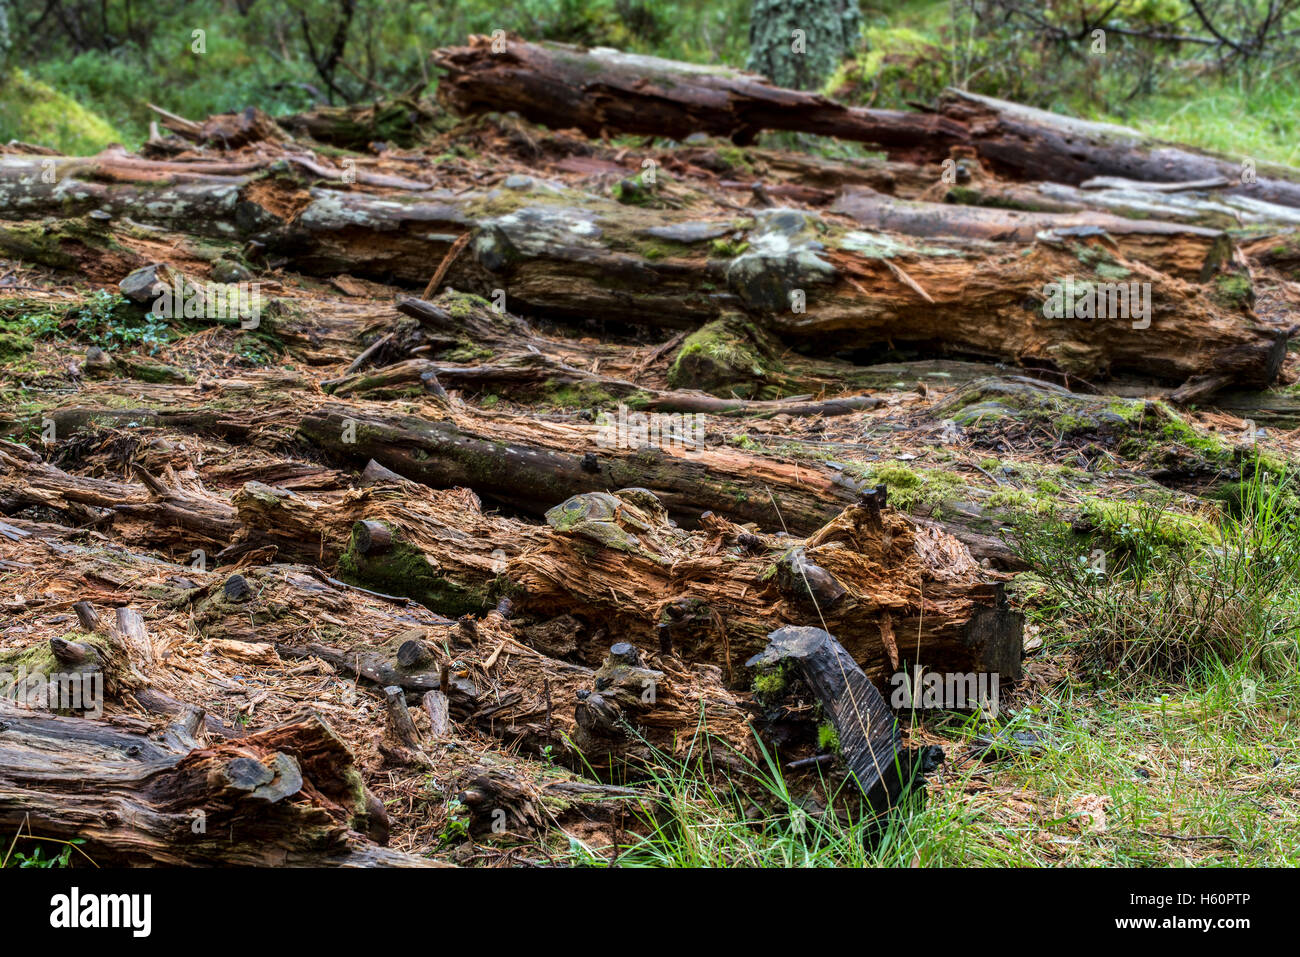 Pile of decaying pine tree trunks left to rot on forest floor as dead wood, habitat for invertebrates, mosses and - Stock Image